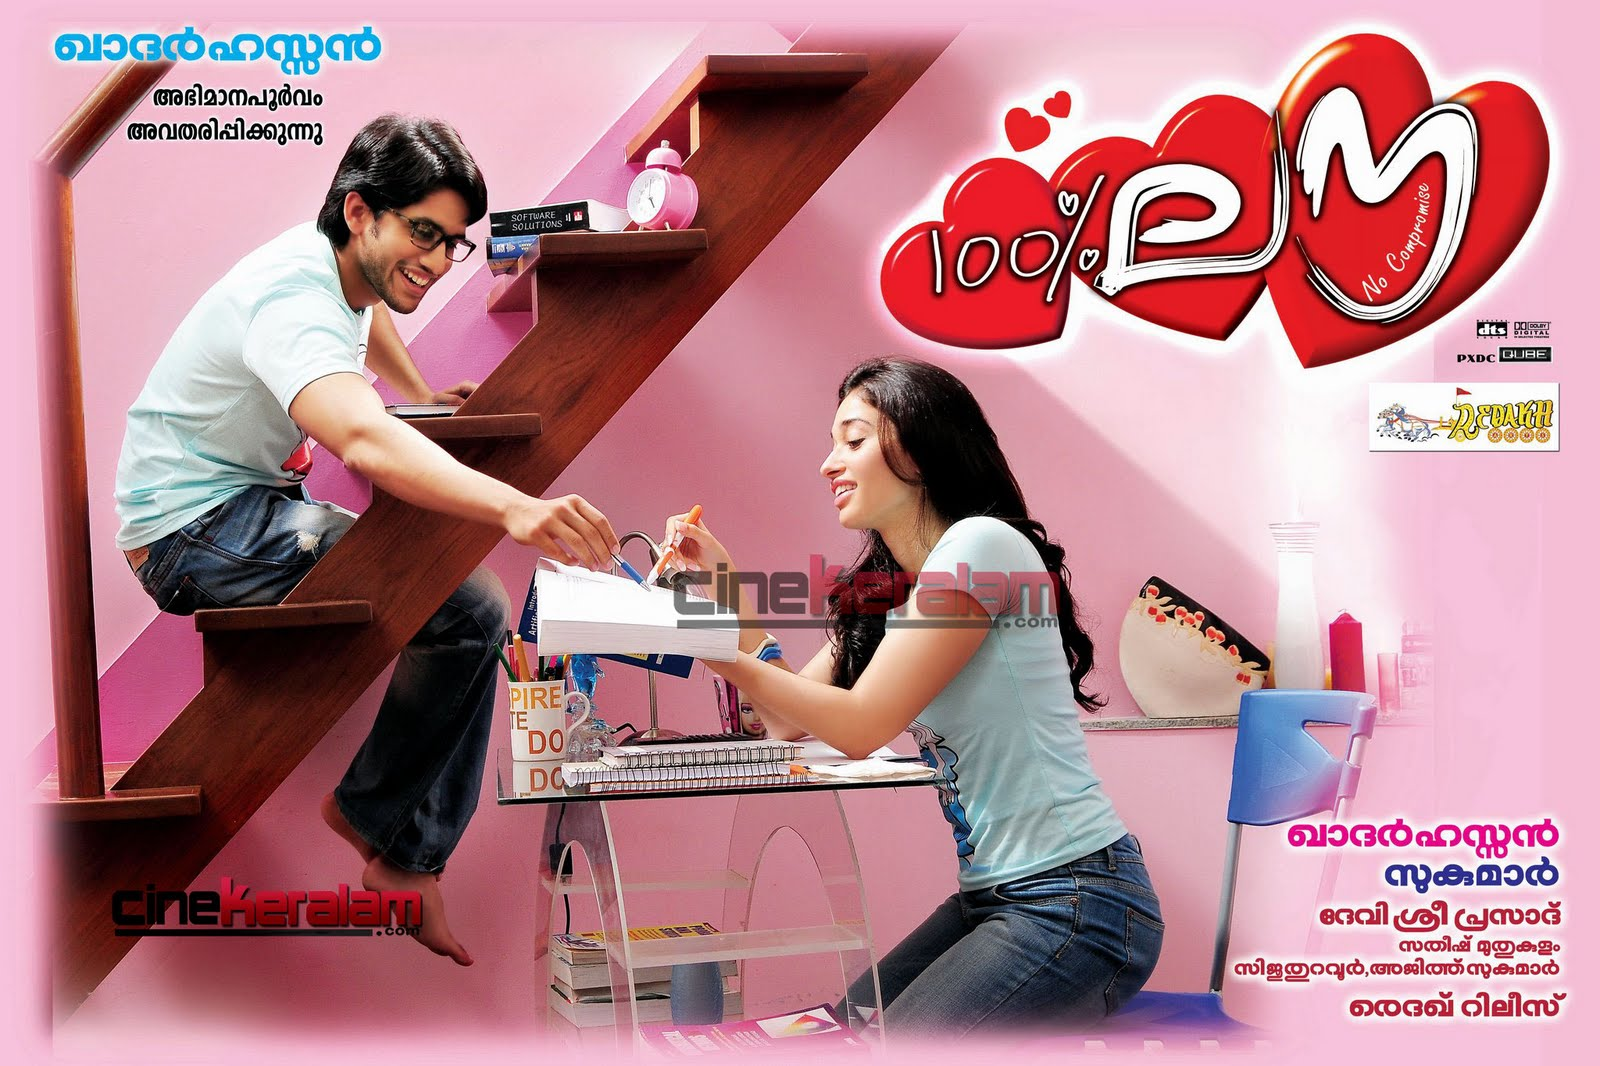 100 love malayalam movie online watch on youtube : Yerra